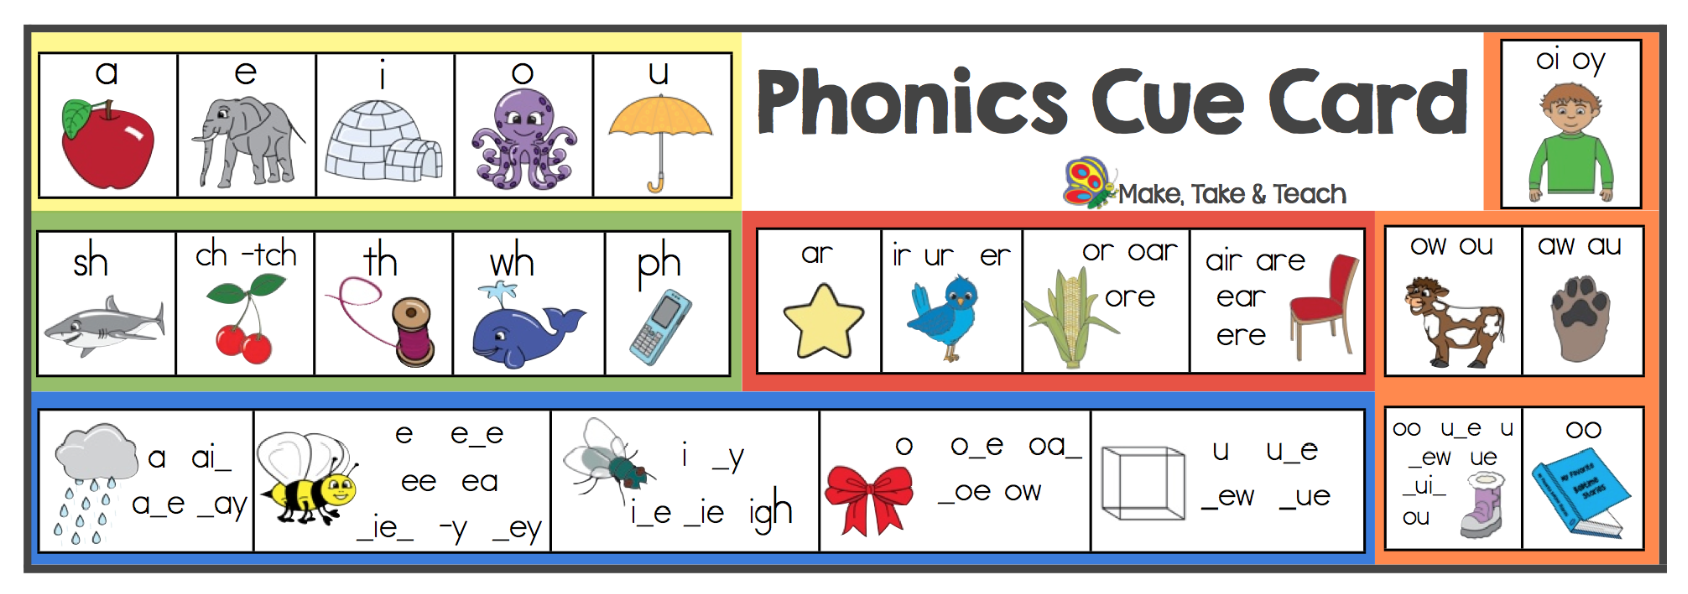 order of teaching phonics letters and sounds pdf